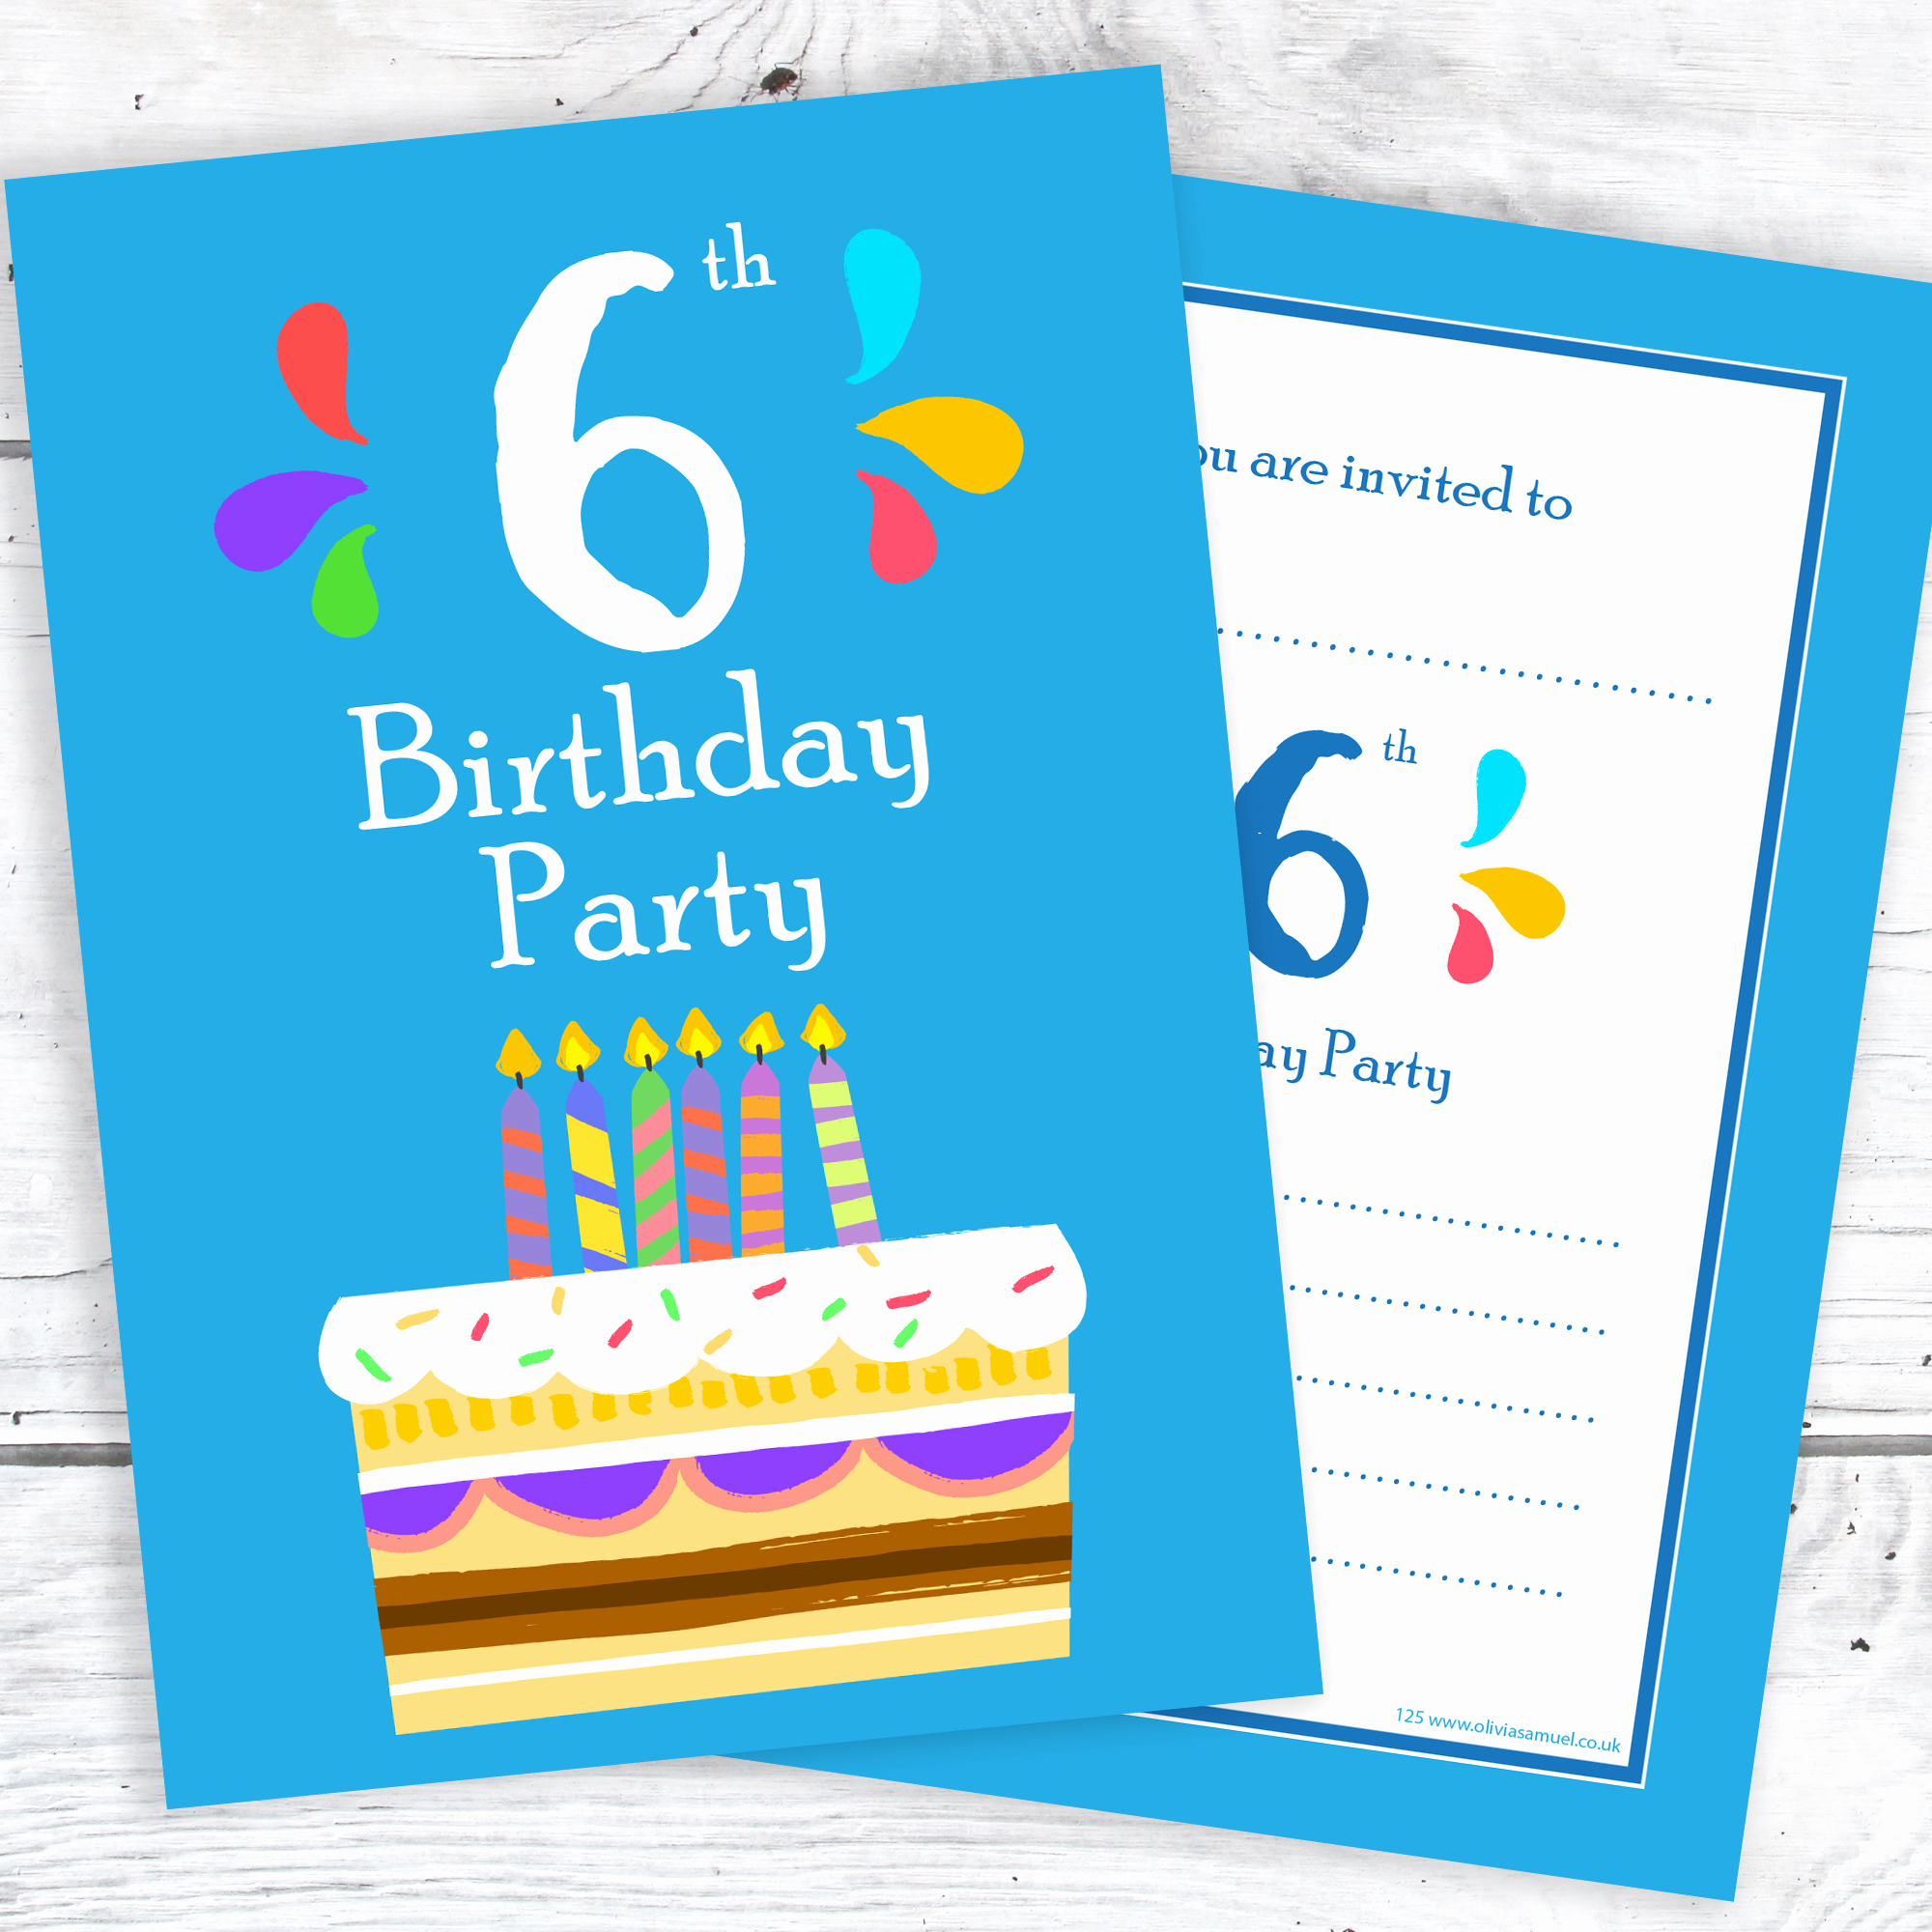 6th Birthday Invitation Wording Fresh 6th Birthday Party Invitations – 6 Candle Blue Cake Design